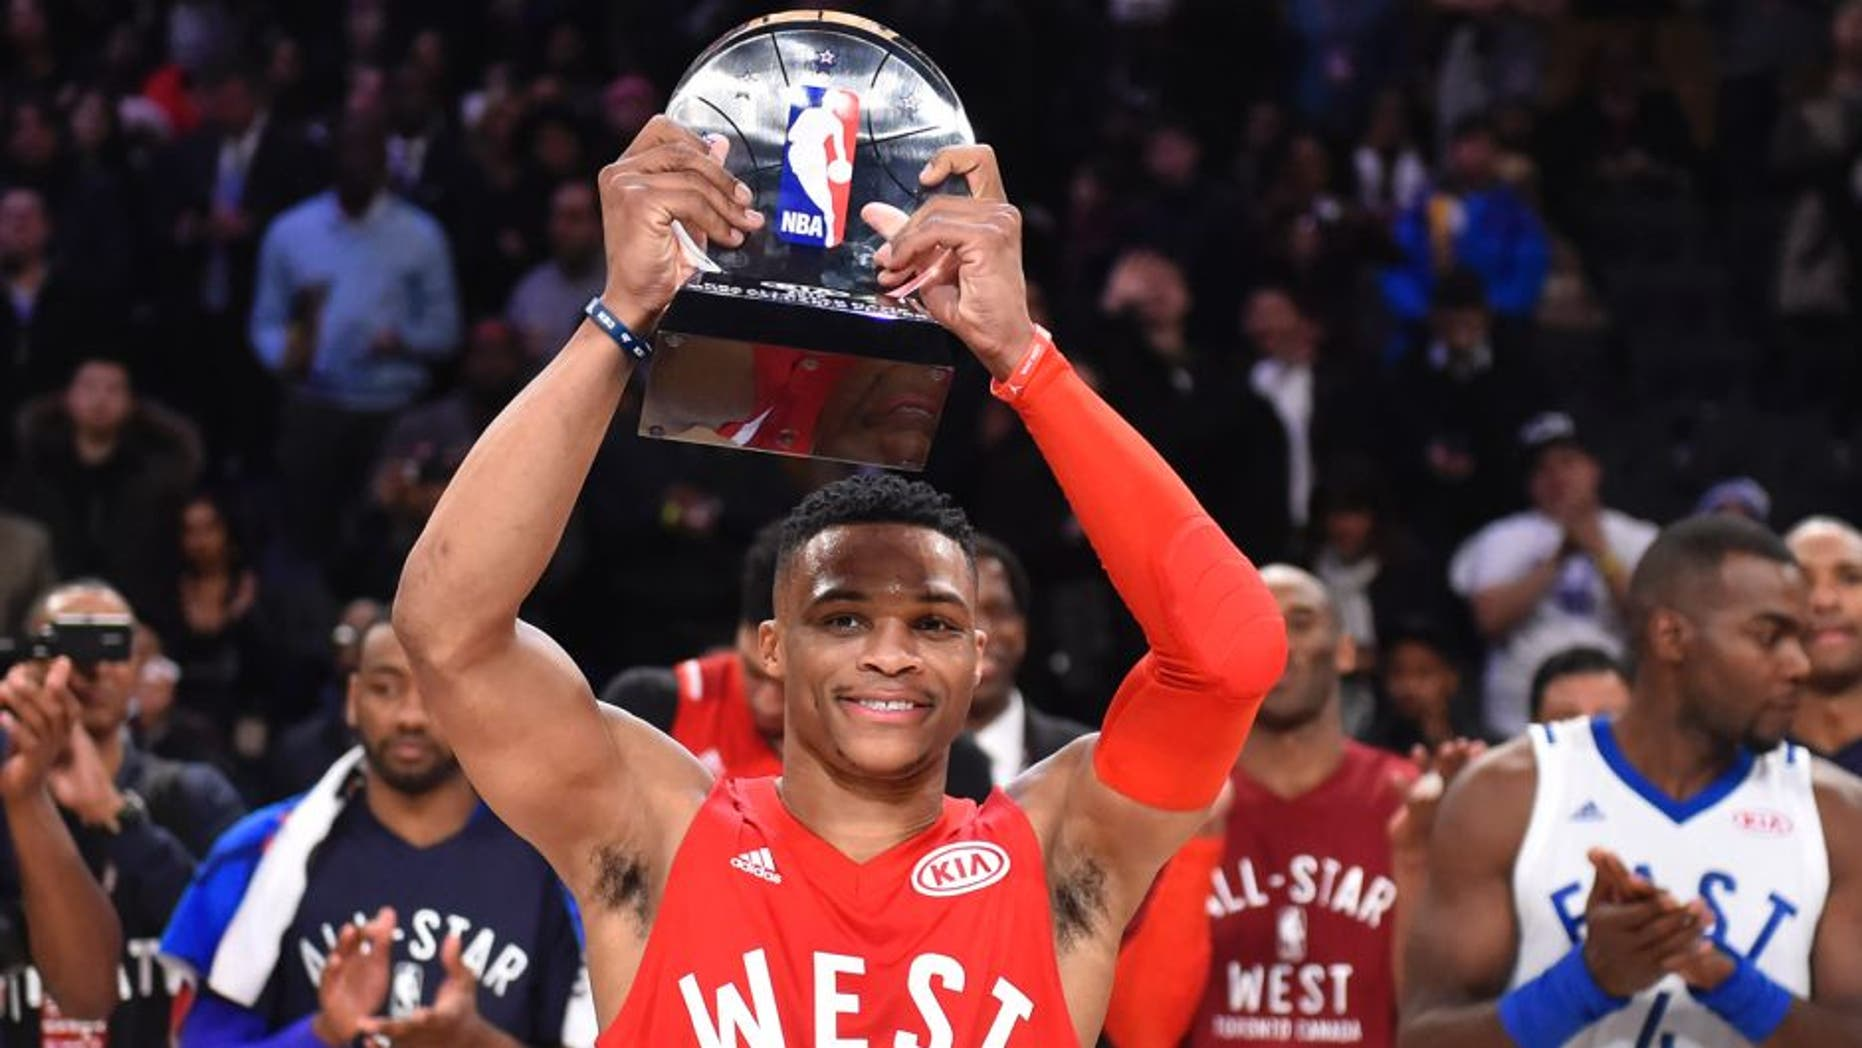 Feb 14, 2016; Toronto, Ontario, CAN; Western Conference guard Russell Westbrook of the Oklahoma City Thunder (0) celebrates after being named MVP of the NBA All Star Game at Air Canada Centre. Mandatory Credit: Bob Donnan-USA TODAY Sports